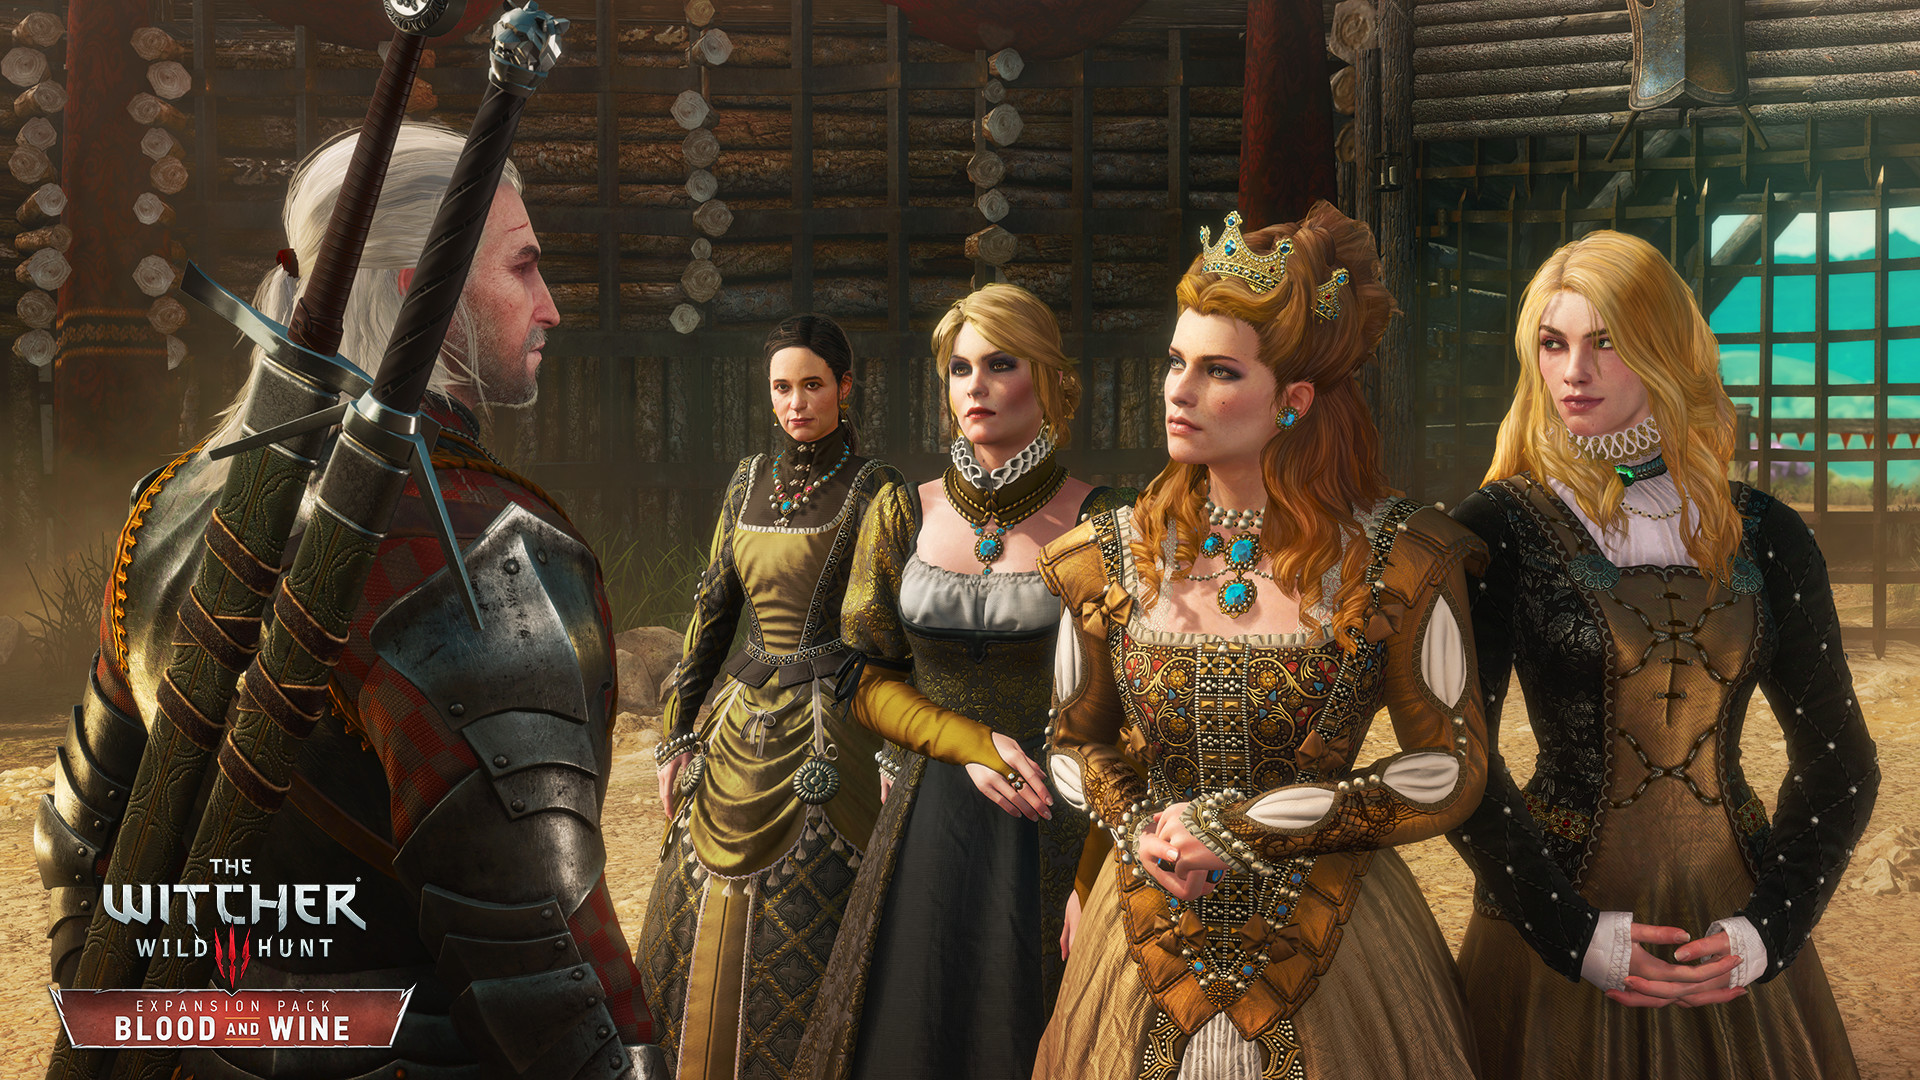 The Witcher 3: Wild Hunt - Blood and Wine screenshot